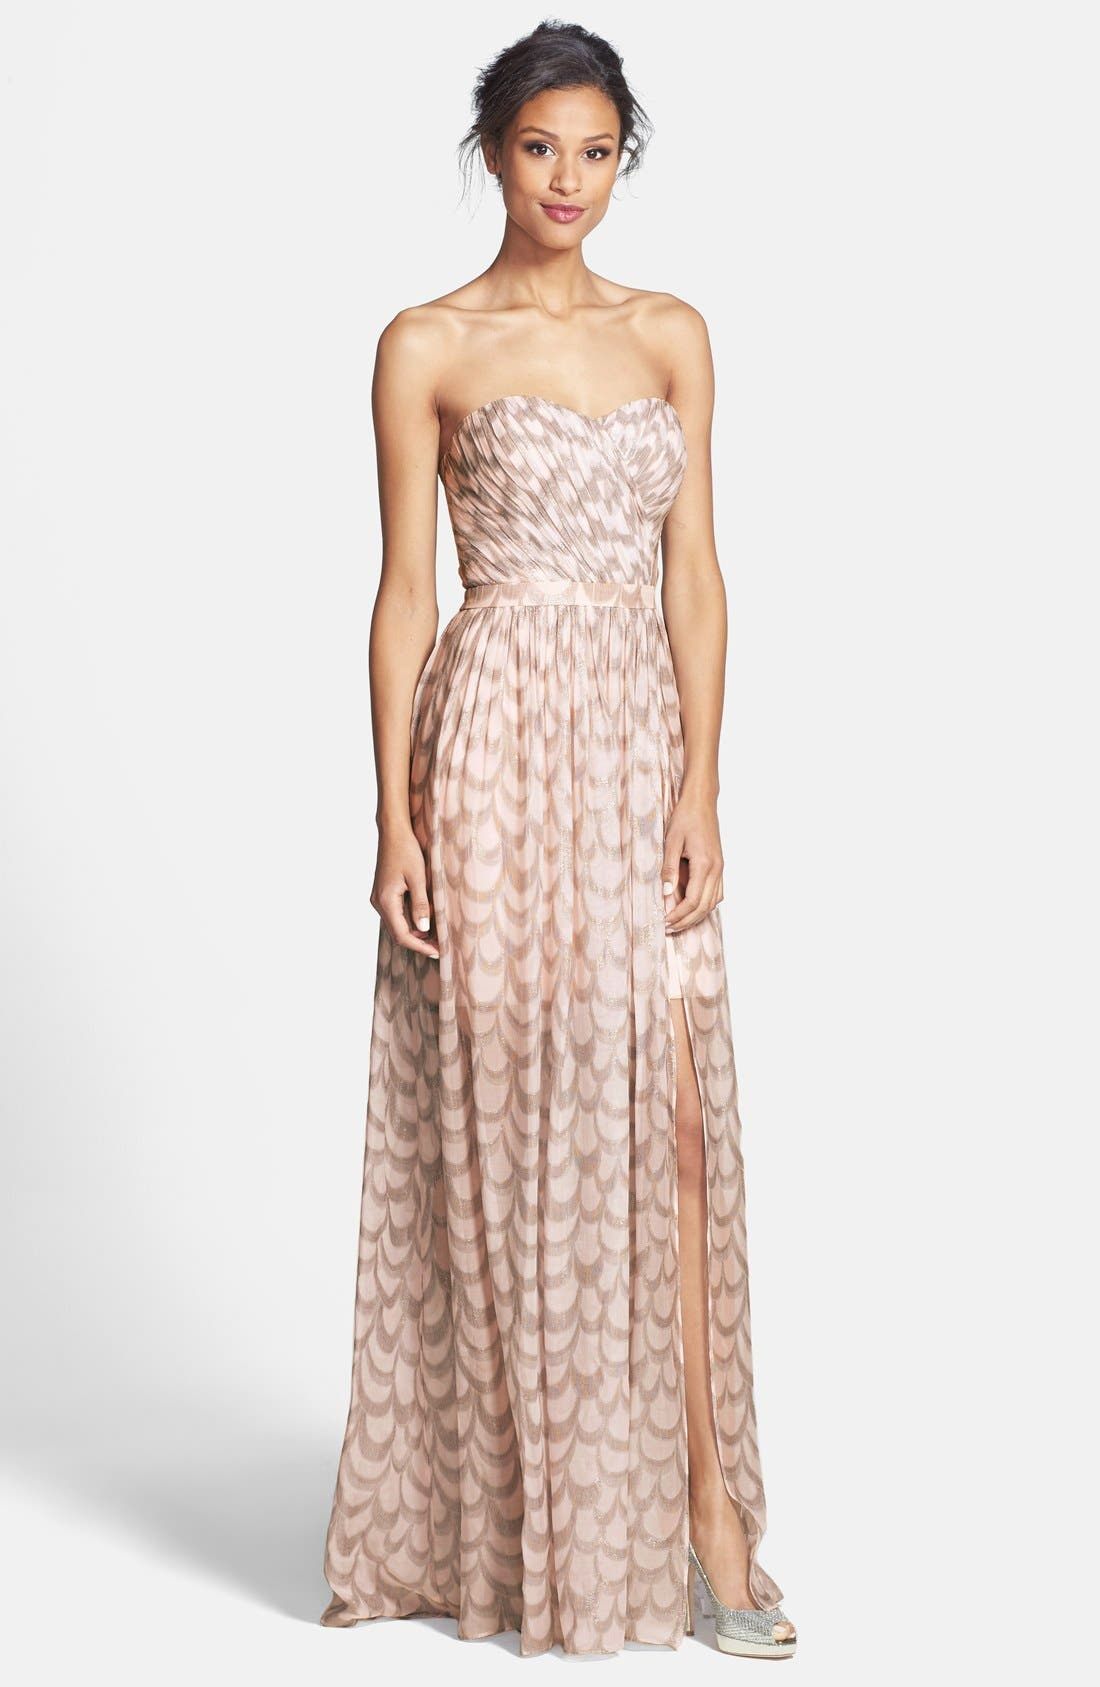 Alternate Image 1 Selected - ERIN erin fetherston 'Chloe' Foiled Chiffon Gown